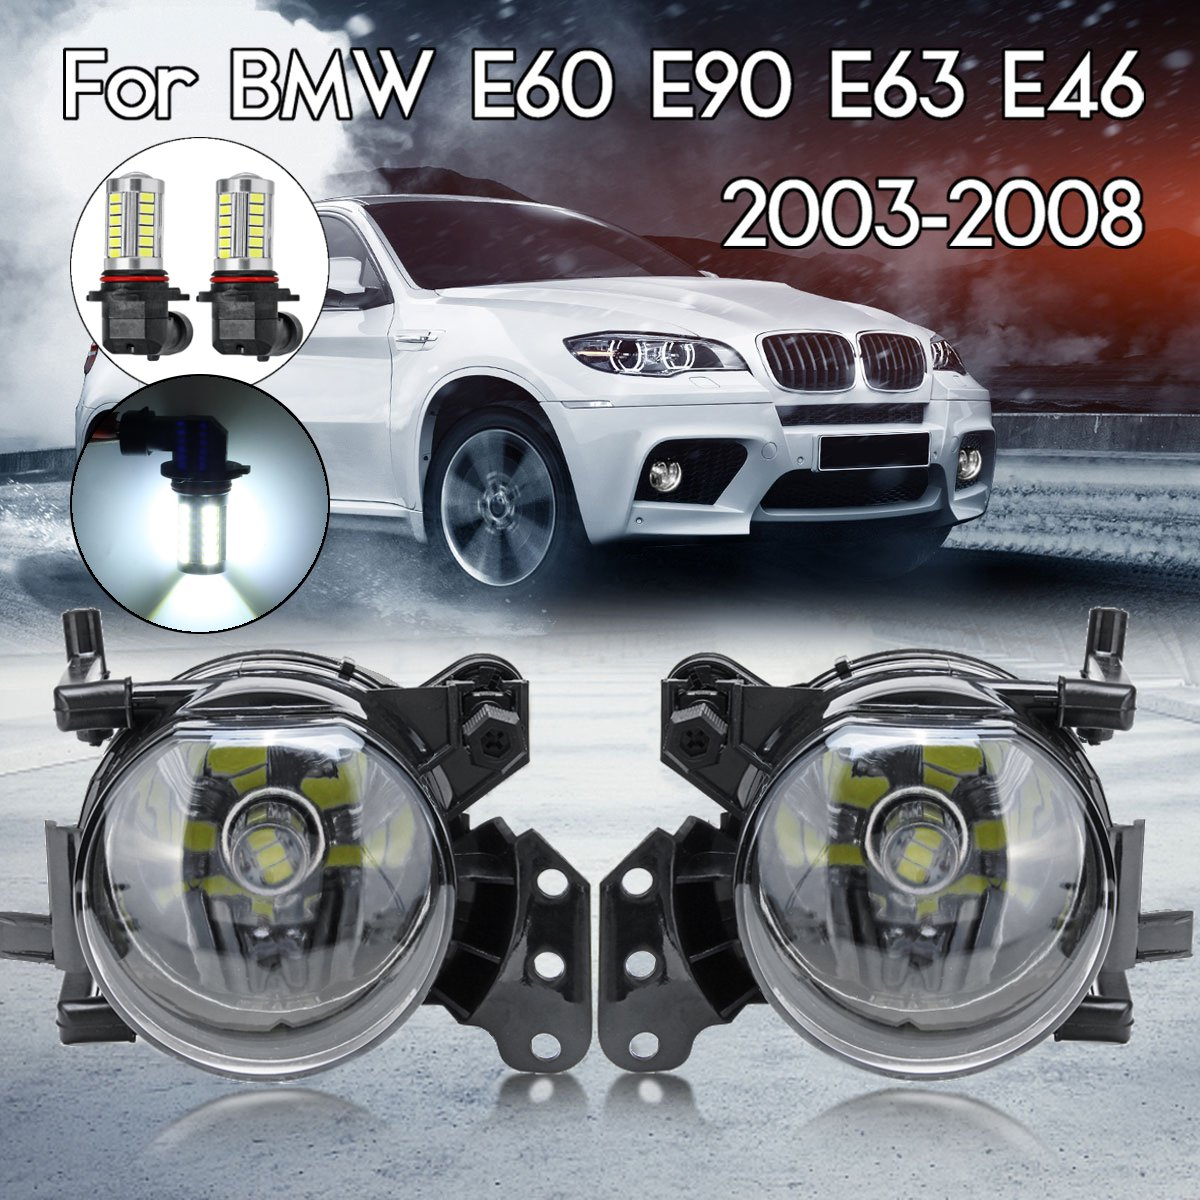 Pair Car <font><b>Front</b></font> Fog <font><b>Lights</b></font> LED HOD Xenon Bulb Fog Lamps Assembly Housing Lens For <font><b>BMW</b></font> E60 <font><b>E90</b></font> E63 E46 323i 325i 525i image